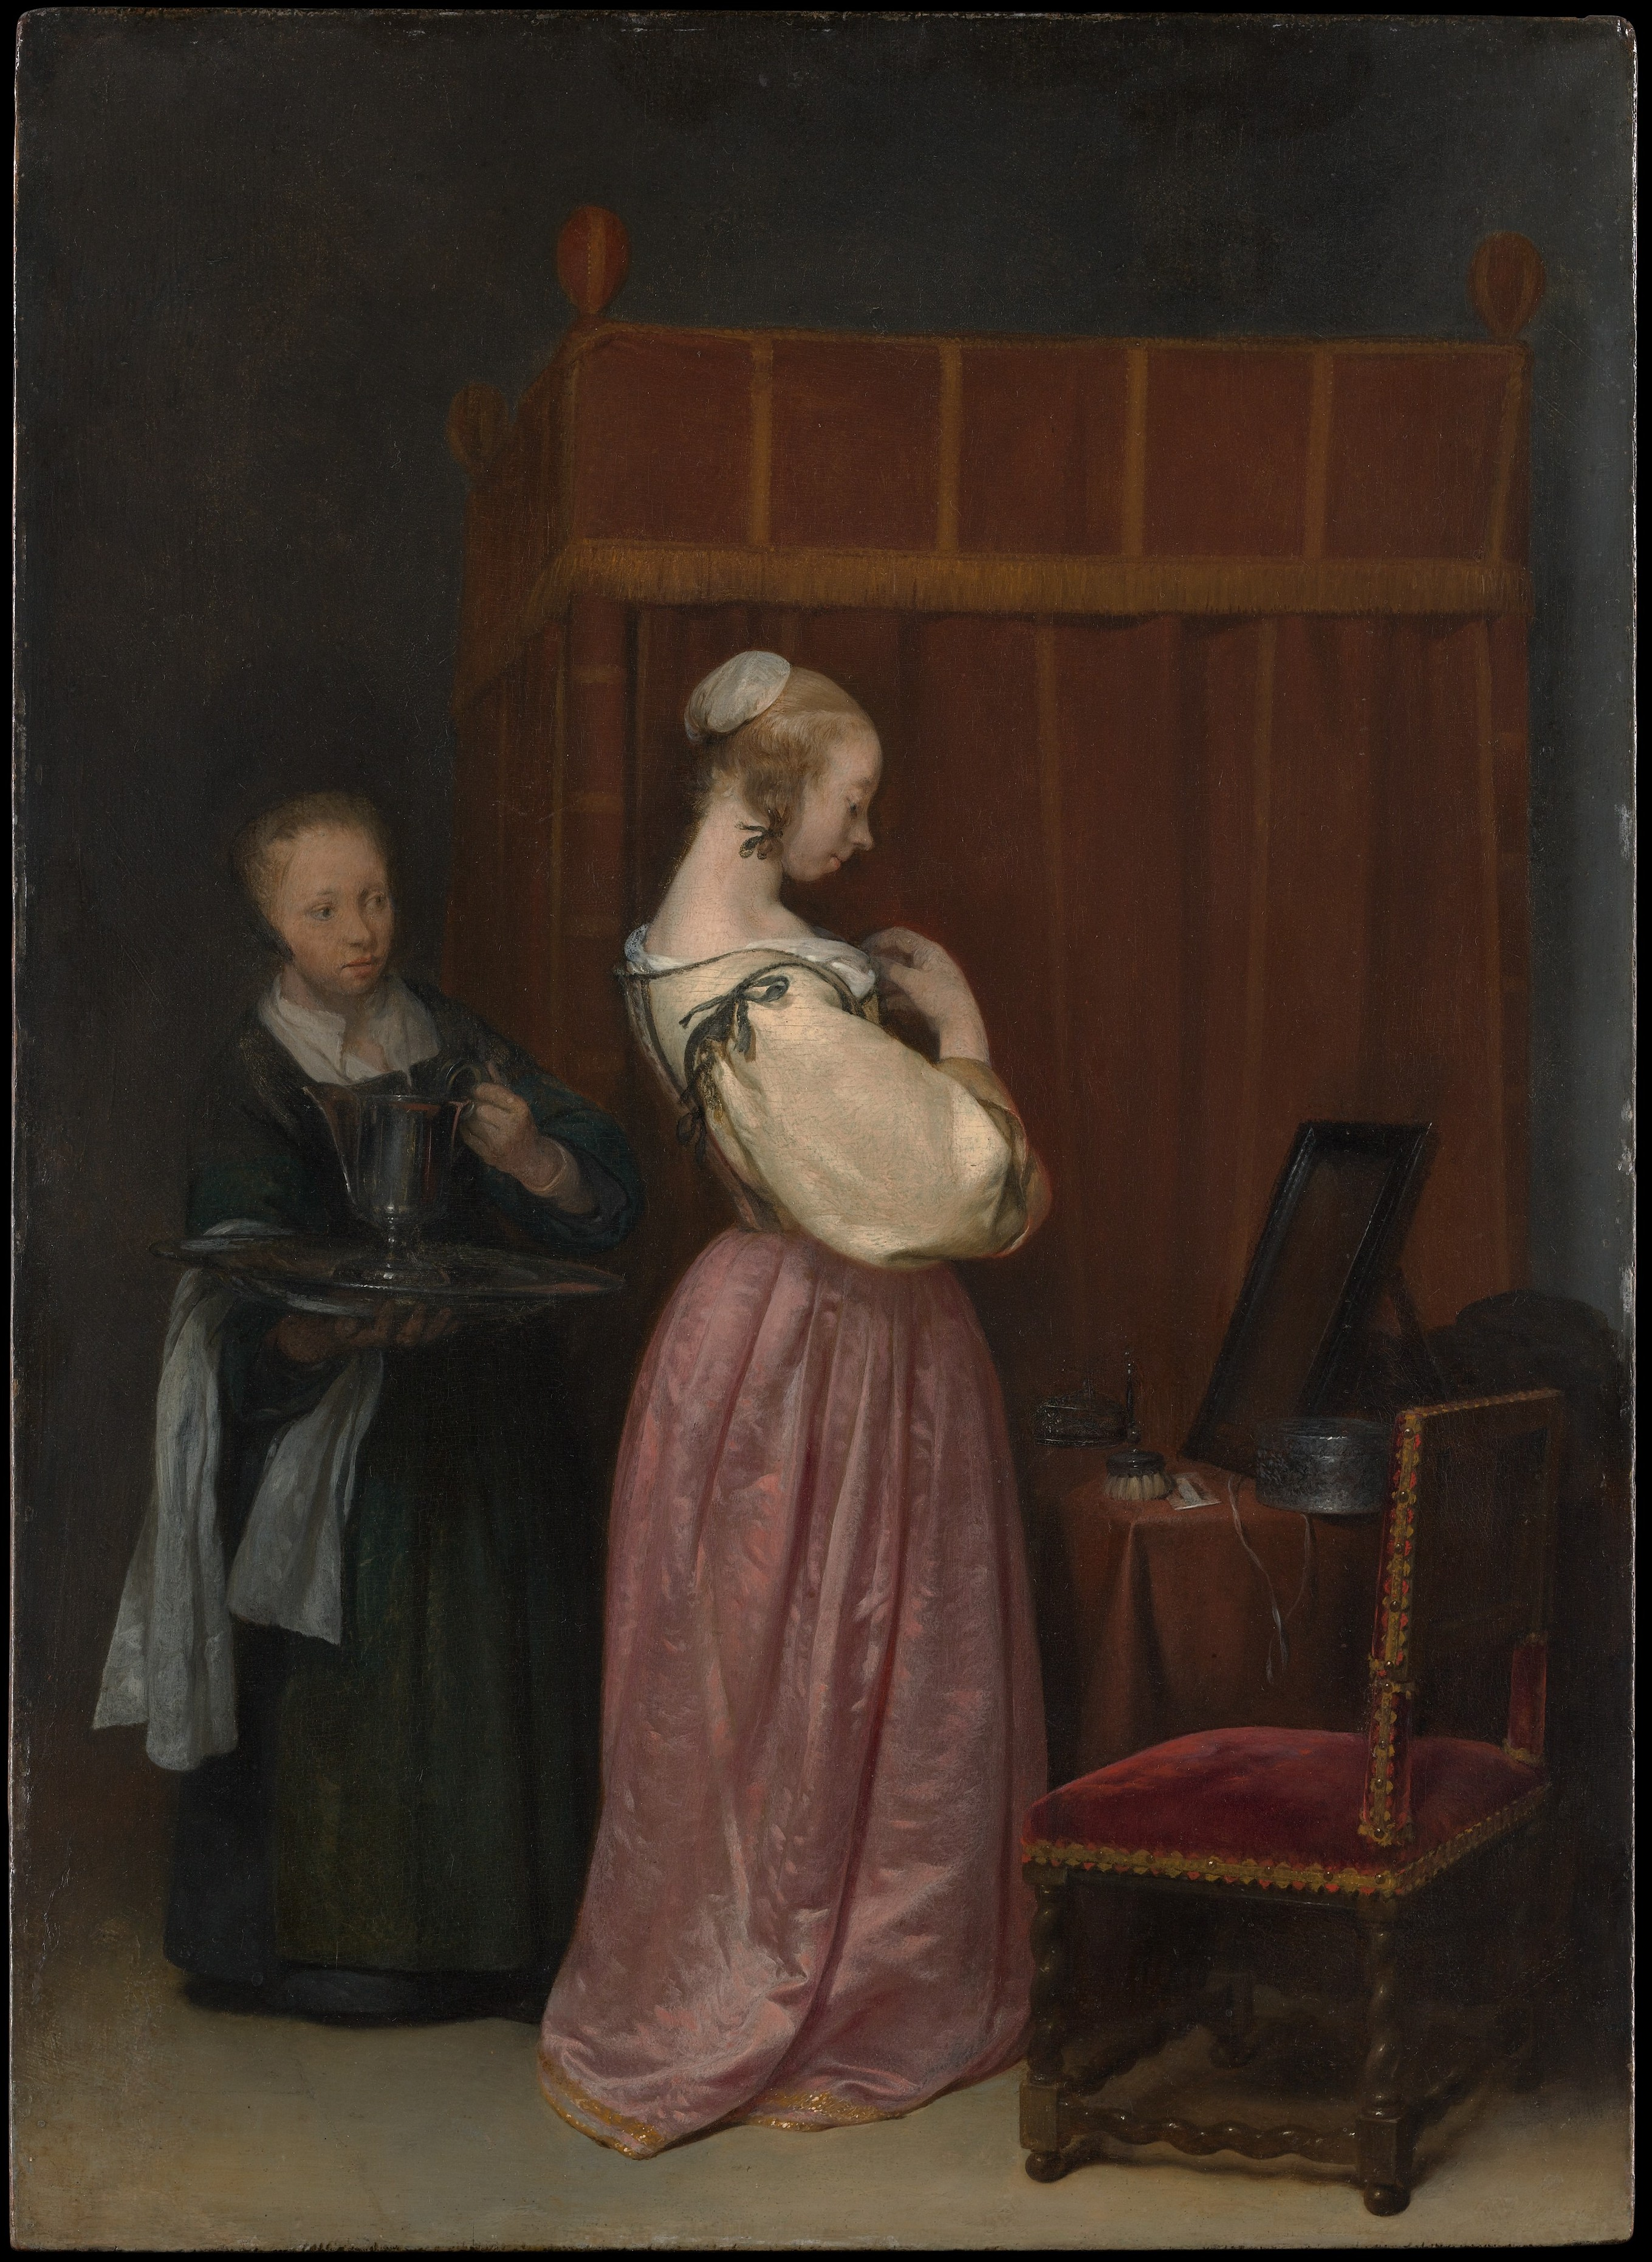 1650s - costume cocktail